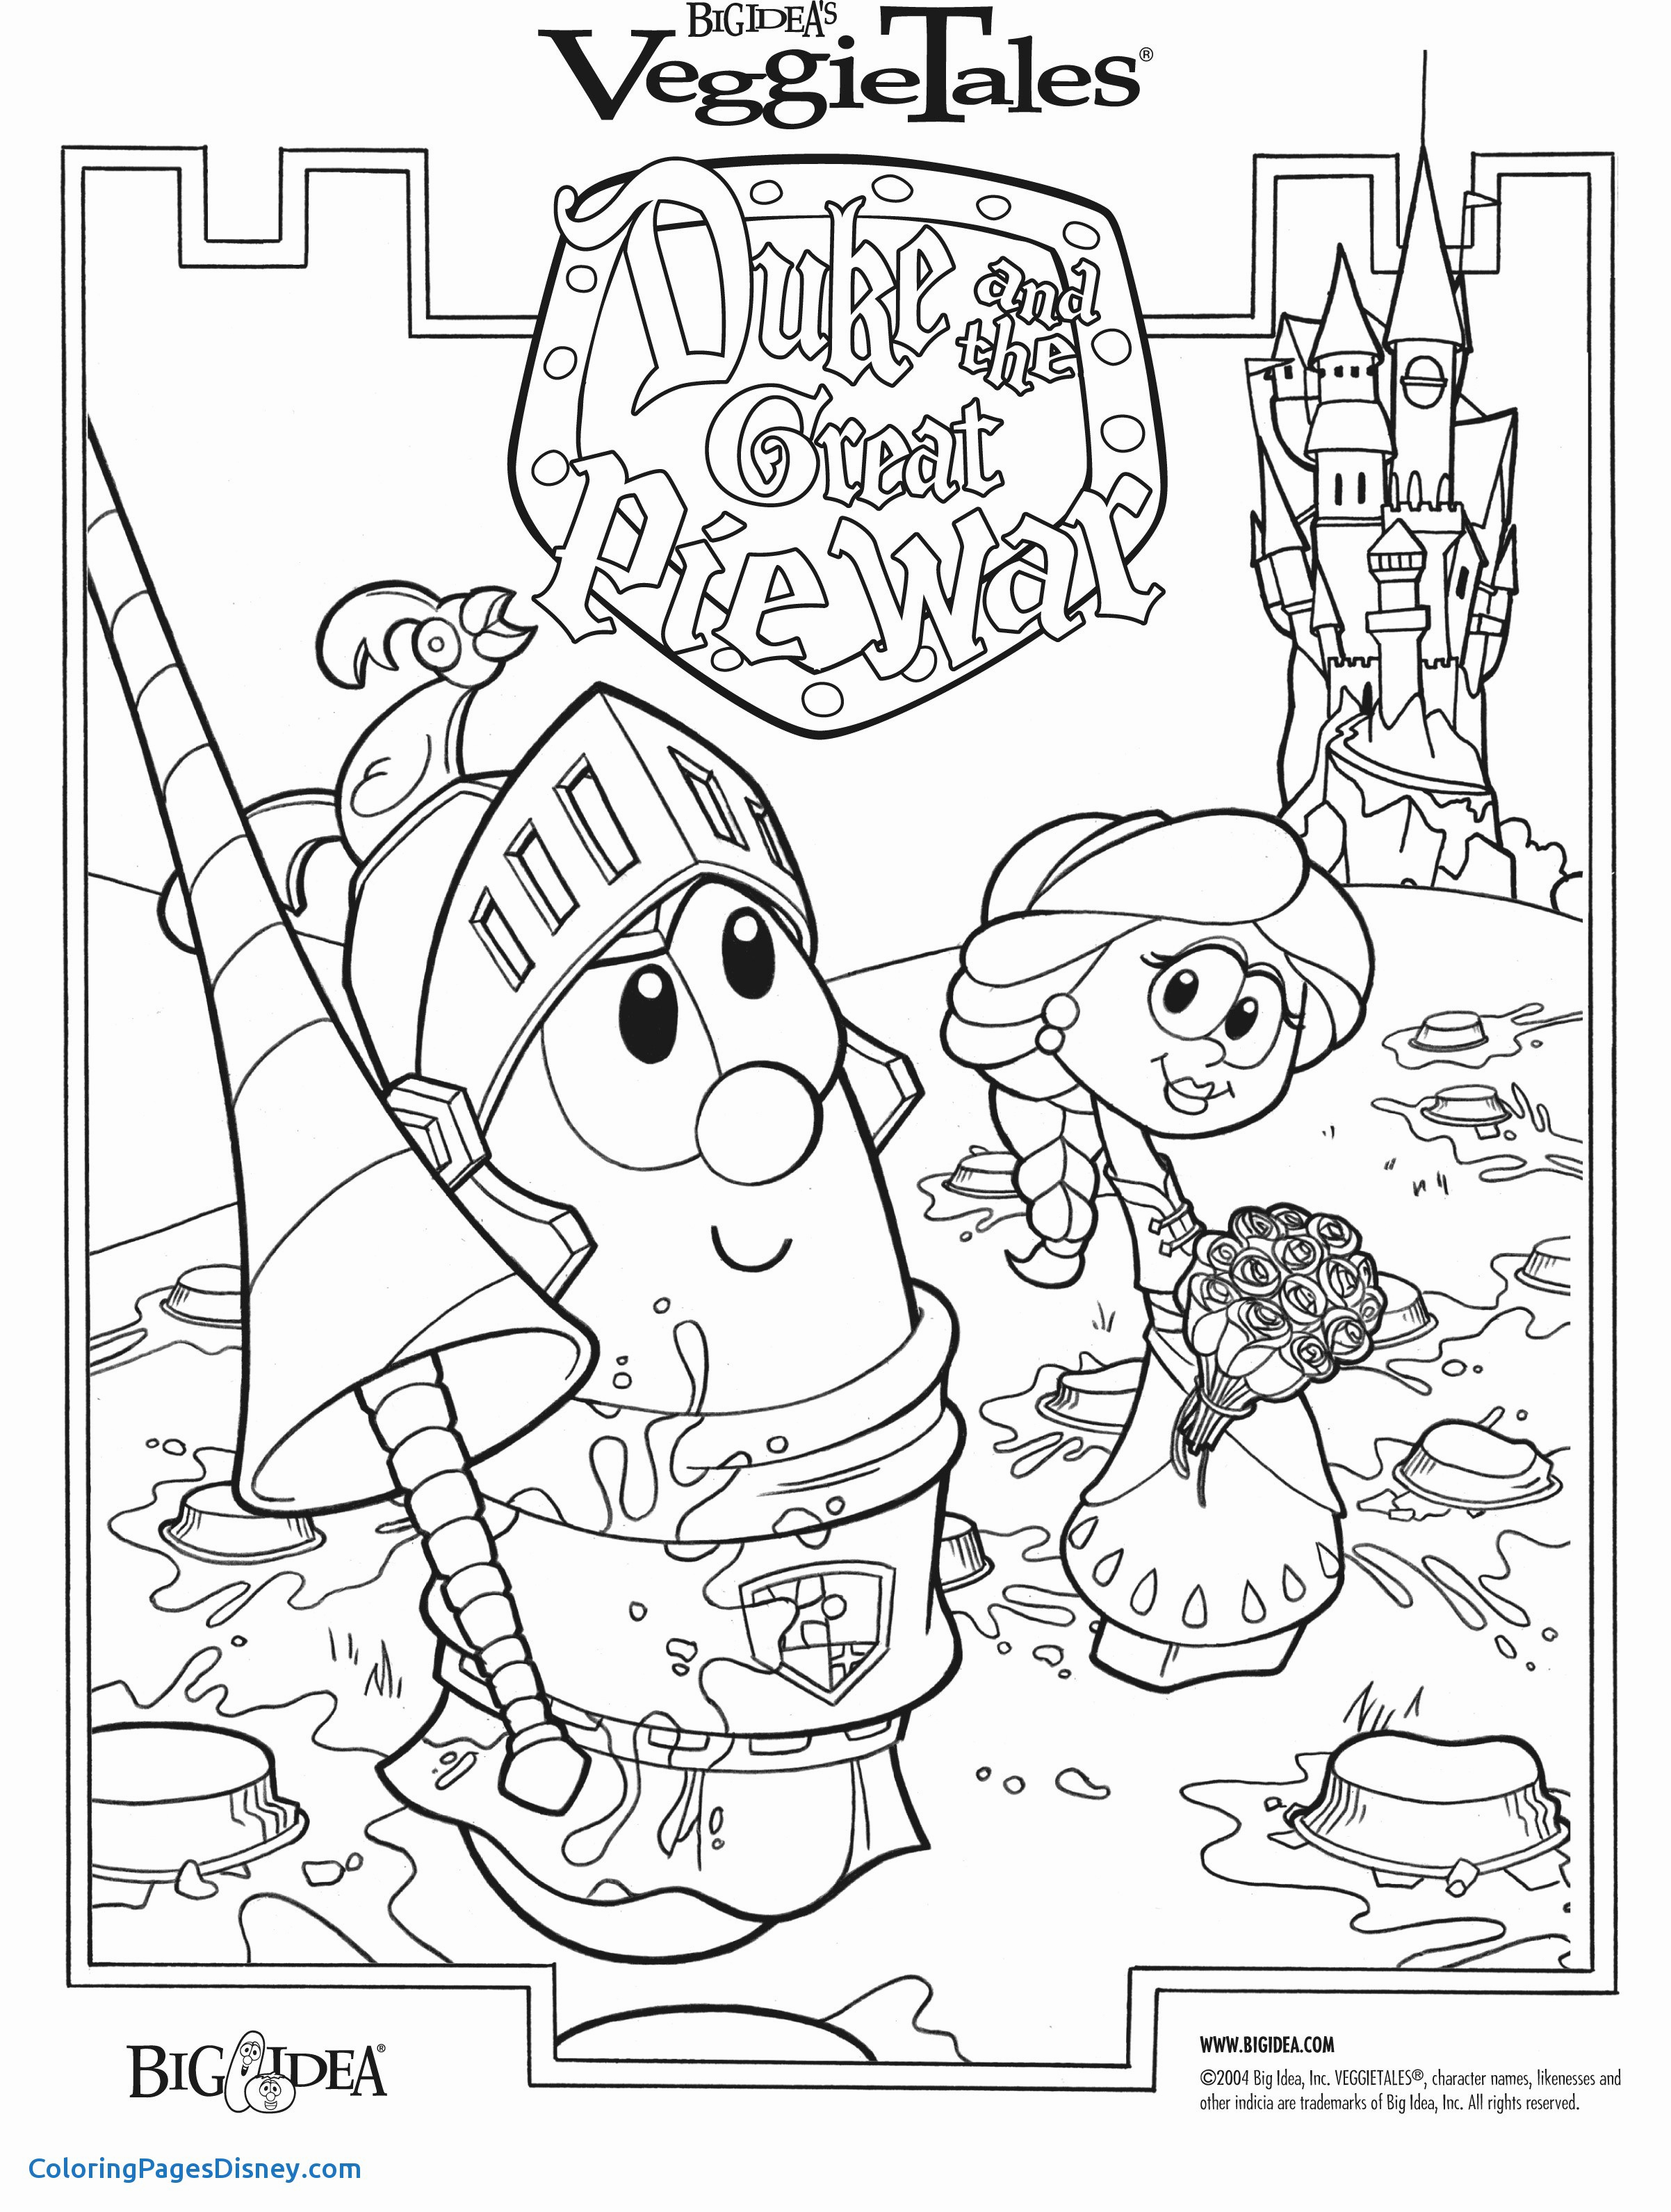 bible story coloring pages preschoolers Collection-Veggie Tales Christmas Coloring Pages Free 18-a